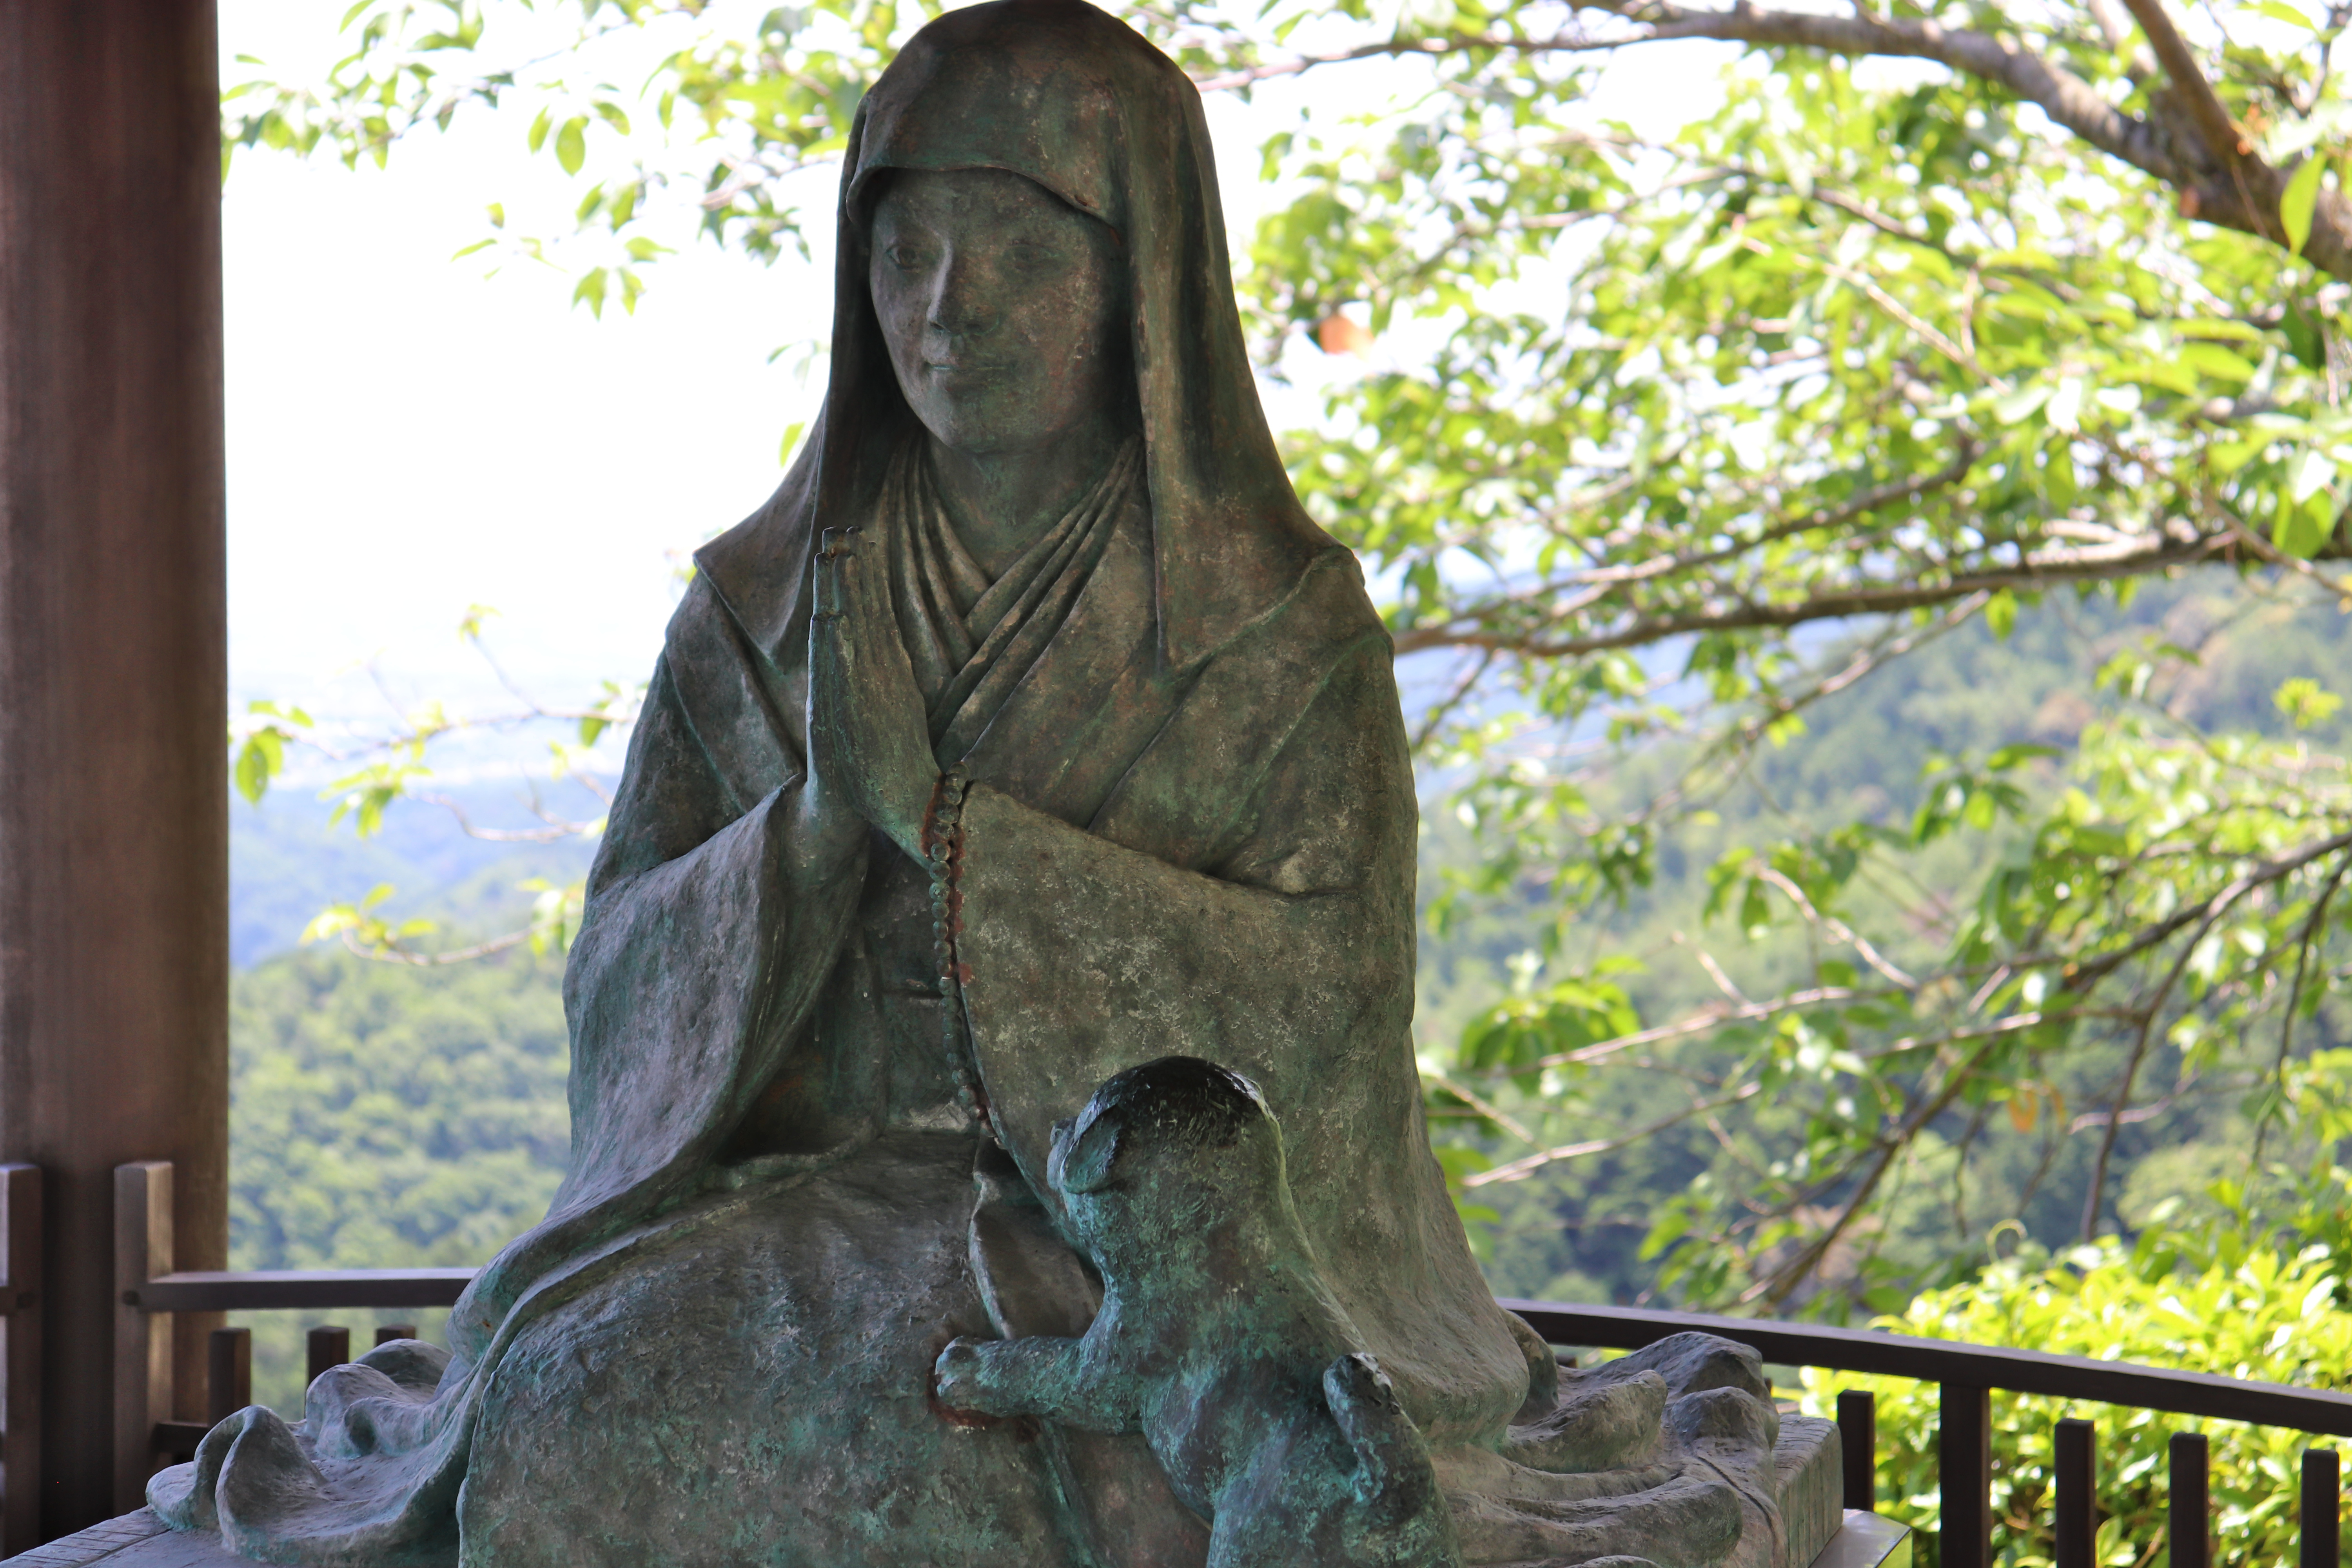 statue of keisho-in at yoshiminedera temple in Kyoto